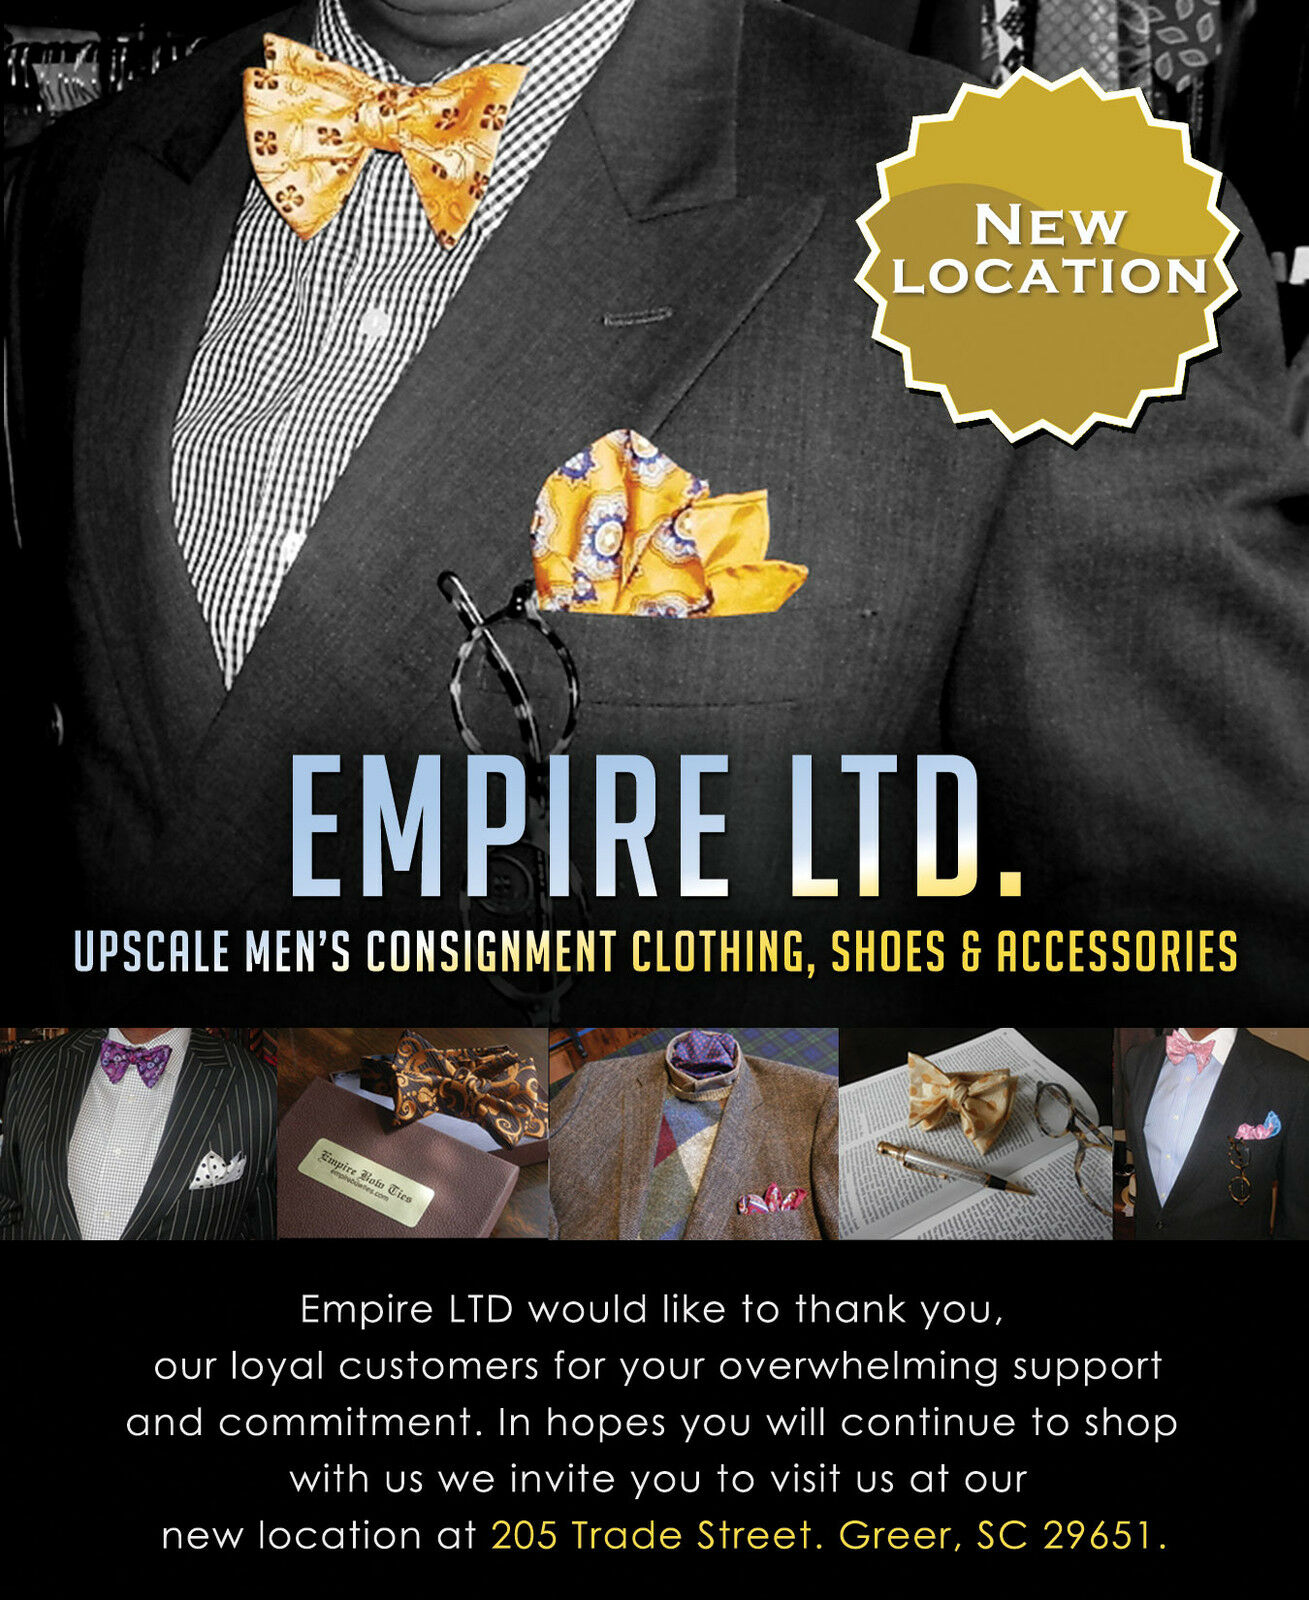 Empire Limited